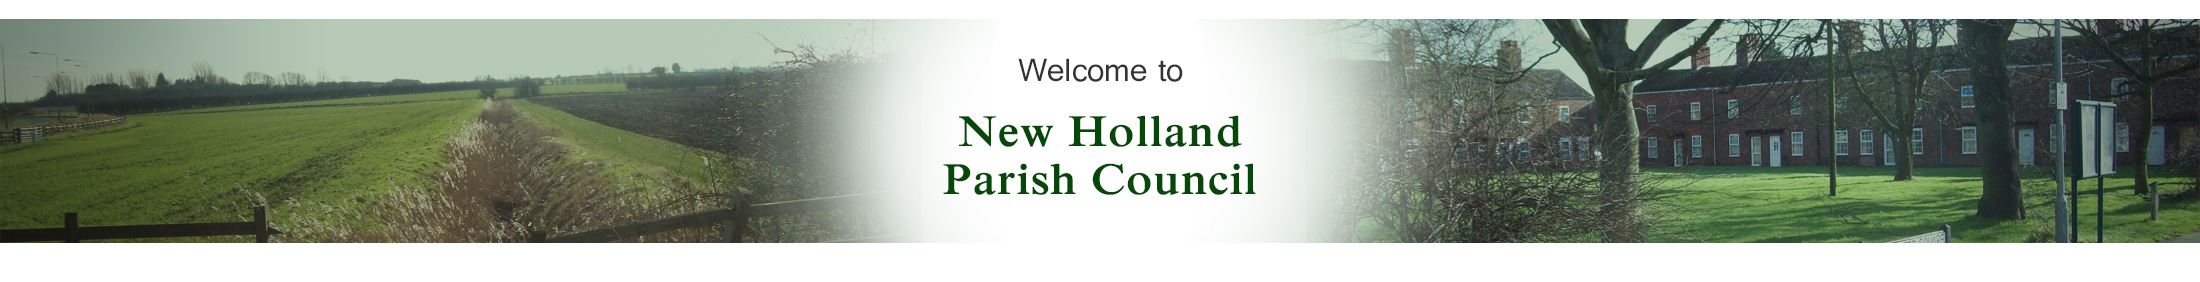 Header Image for New Holland Parish Council